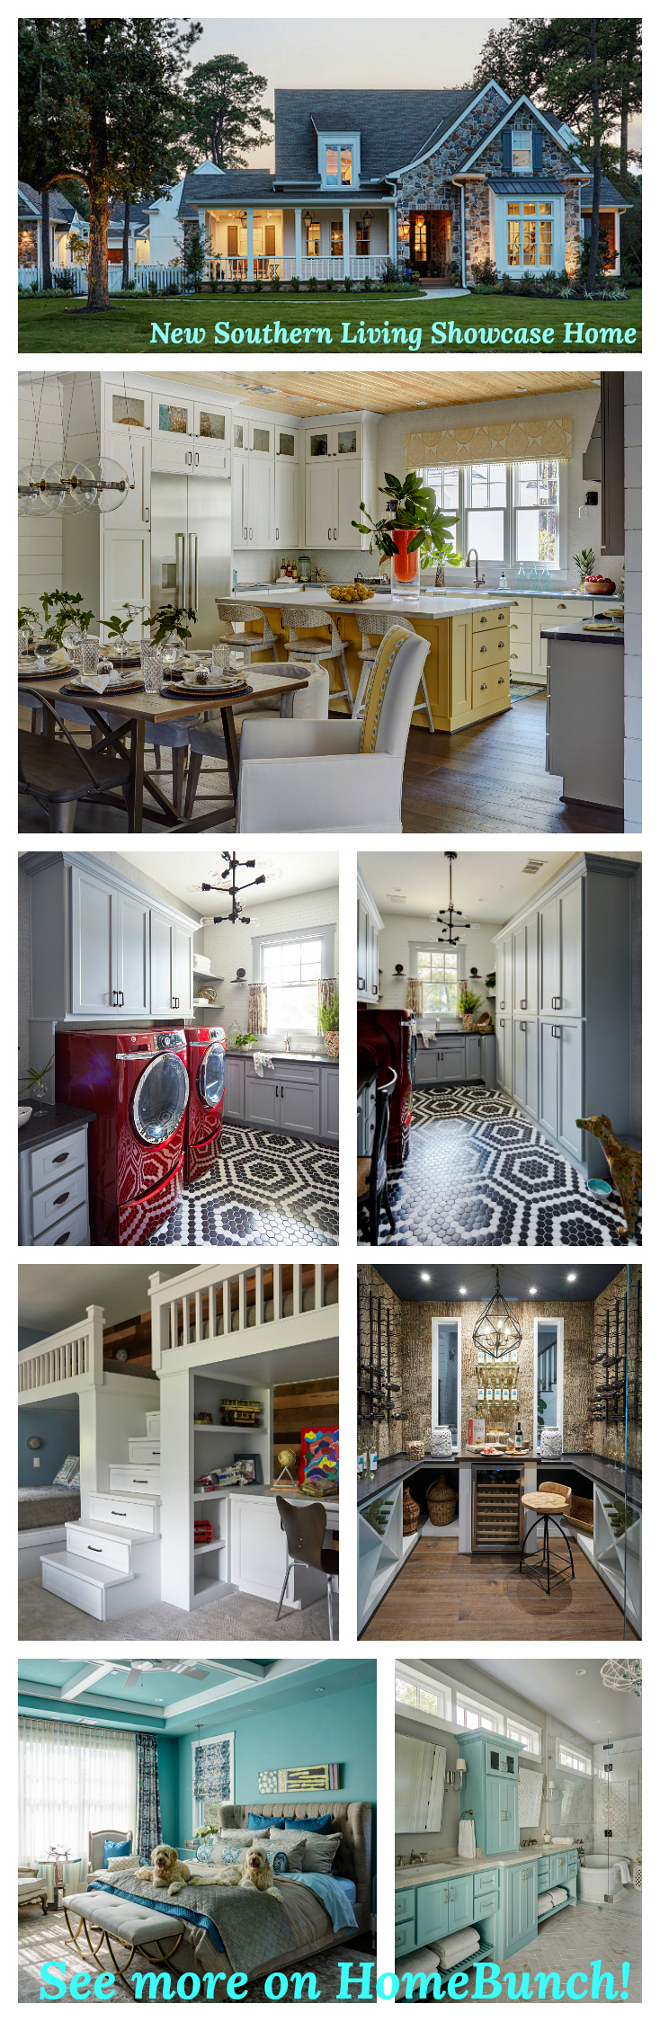 New Southern Living Showcase Home. See all paint colors, lighting and more sources on Home Bunch. #NewSouthernLivingHome #SouthernLivingHome #ShowcaseHome